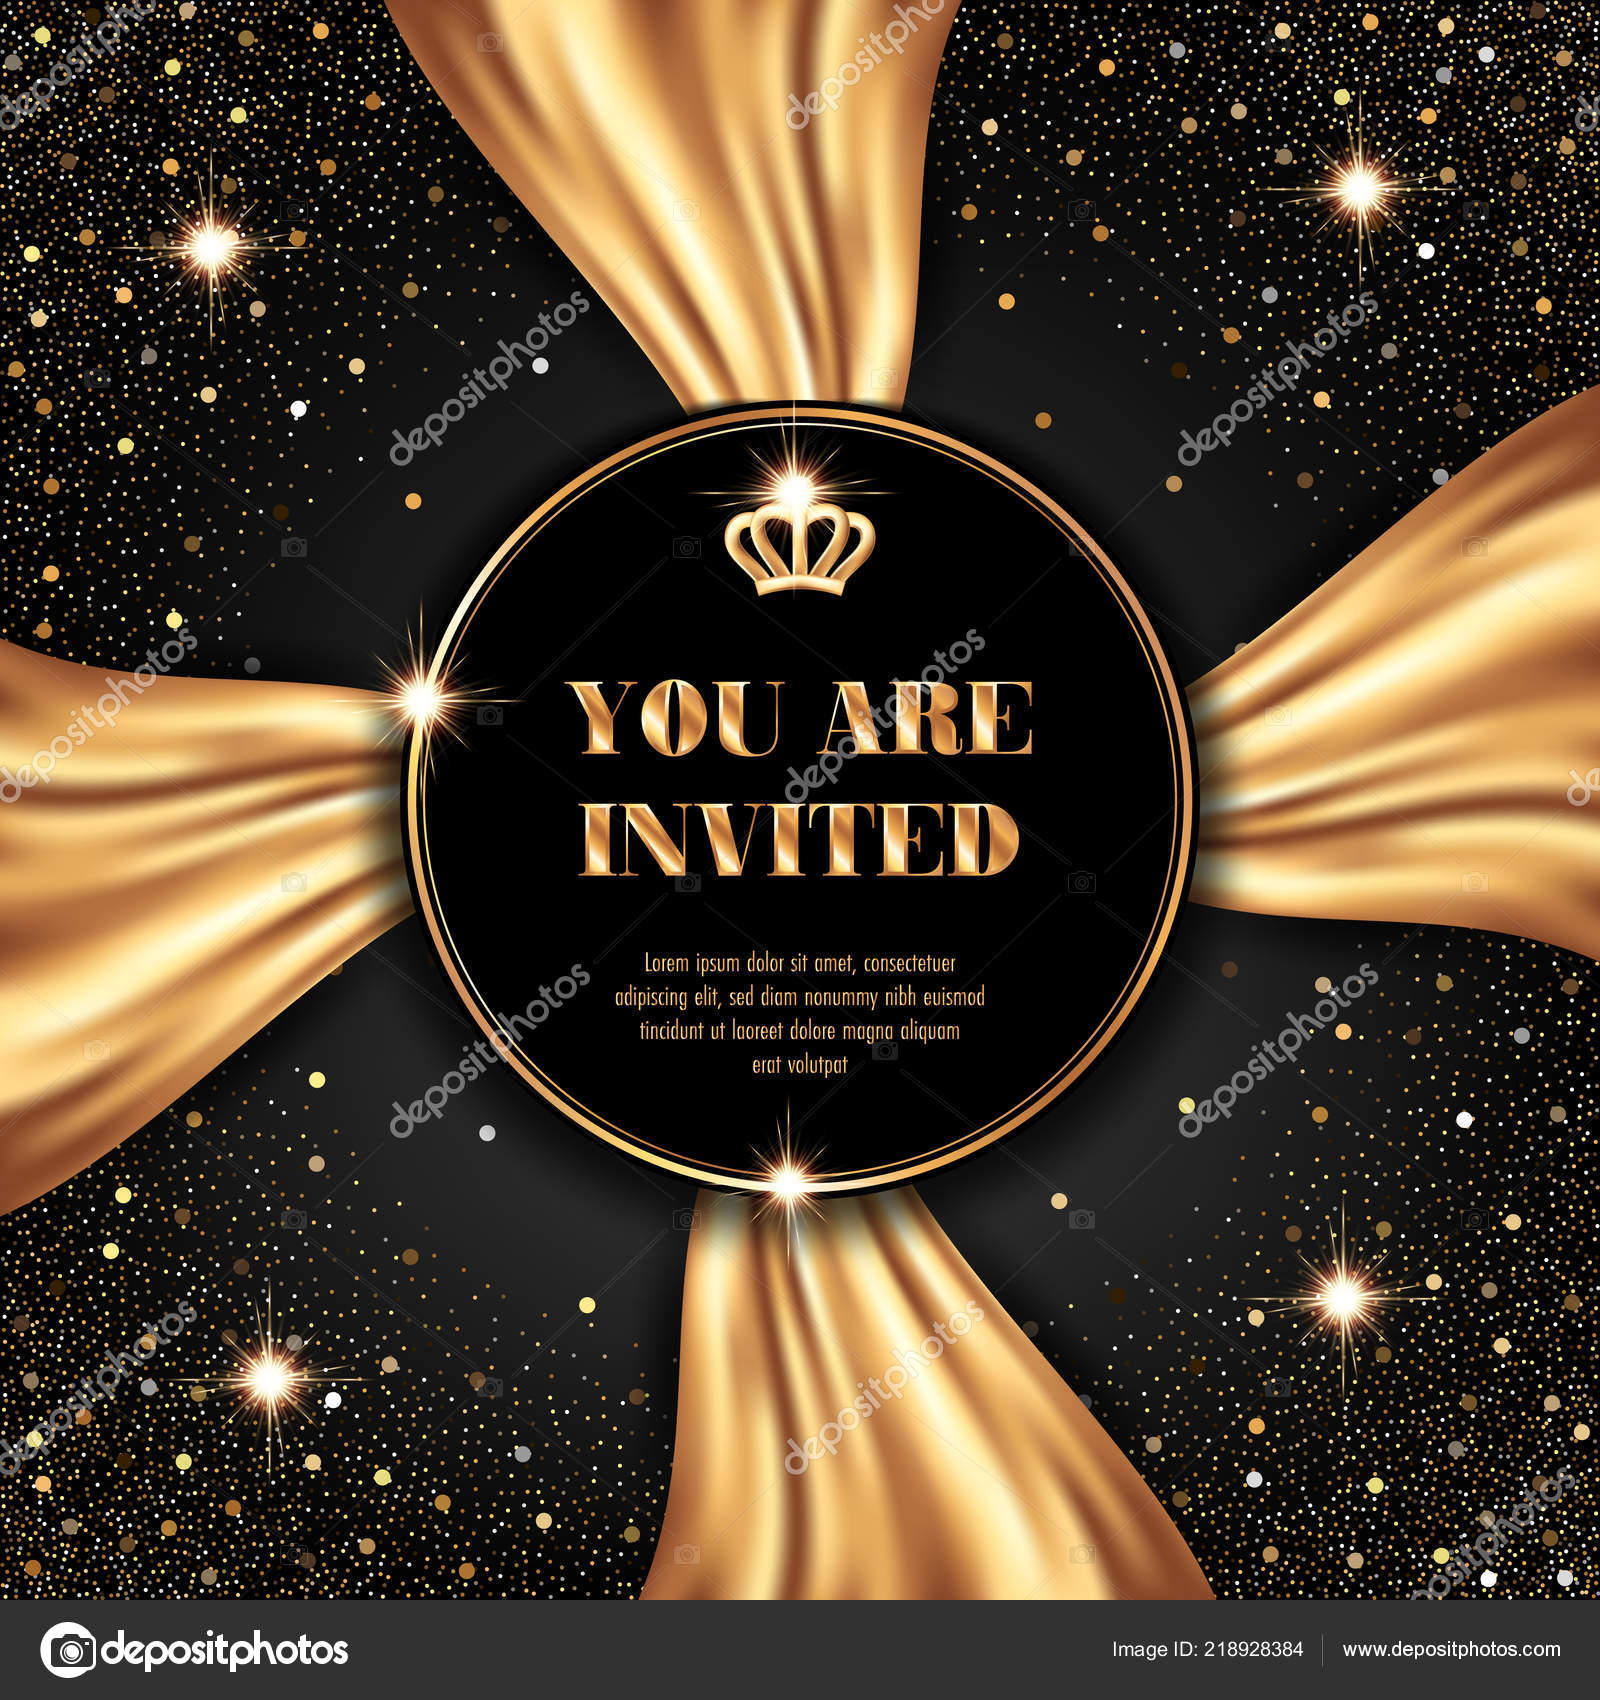 vip invitation template golden crown smooth fabric black background